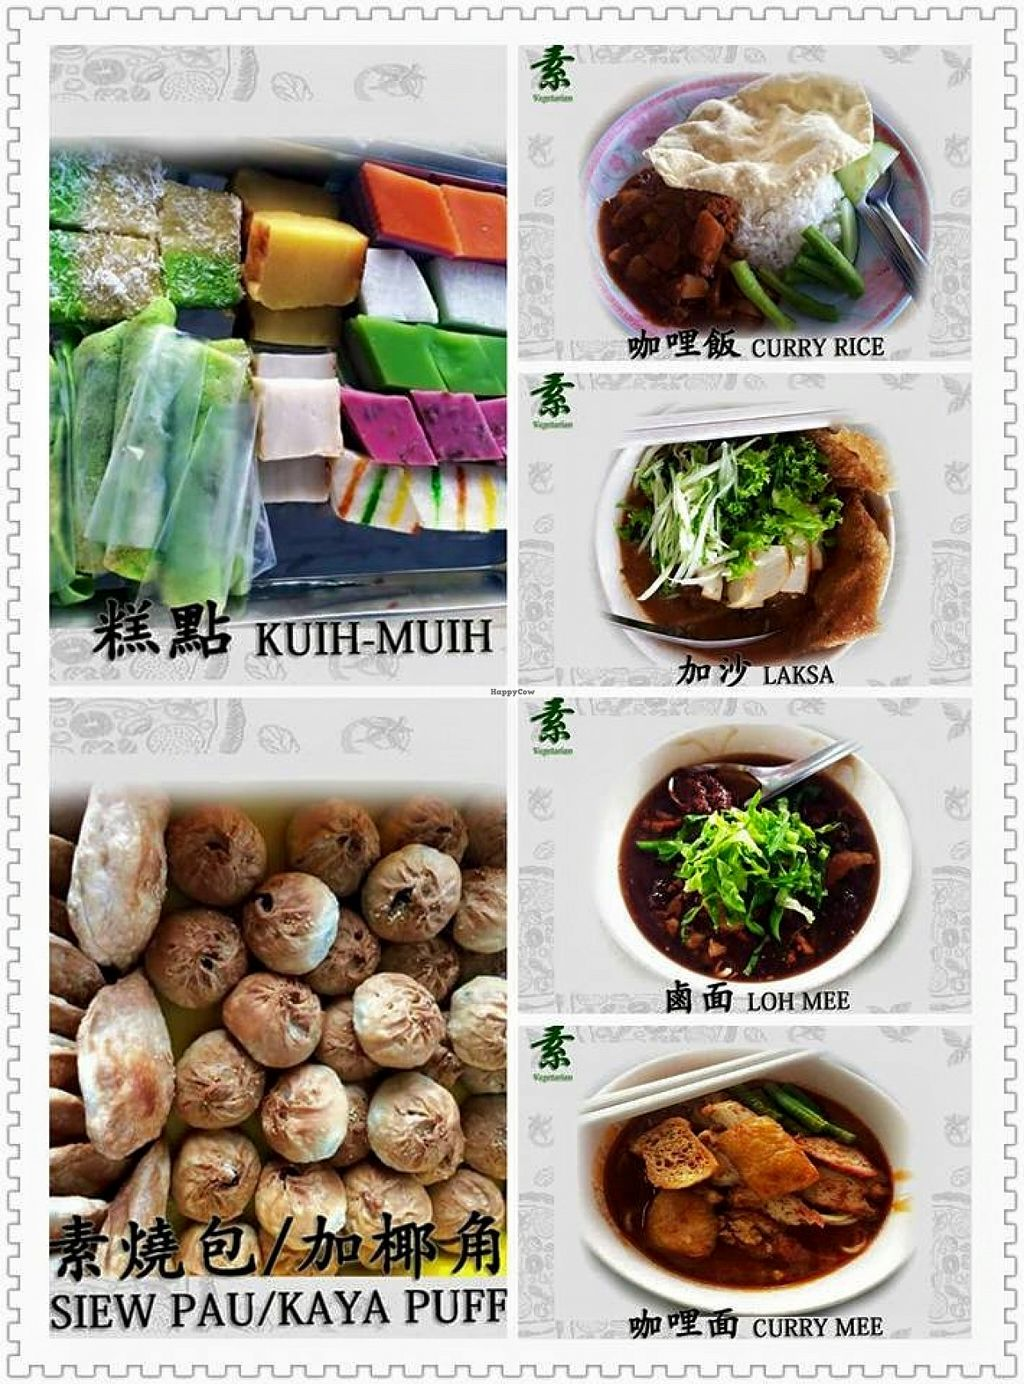 """Photo of Ah Da Wu Vegetarian - Atap Kopitiam  by <a href=""""/members/profile/francischeang"""">francischeang</a> <br/>This vegetarian shop is located in Penang bukit tambun. If you want try different tambun local style and local food I strongly recommend this place. Their best food is LOH MEE and laksa. No egg no garlic and no onion. (Beside tambun caltex) <br/> May 19, 2016  - <a href='/contact/abuse/image/73907/149757'>Report</a>"""